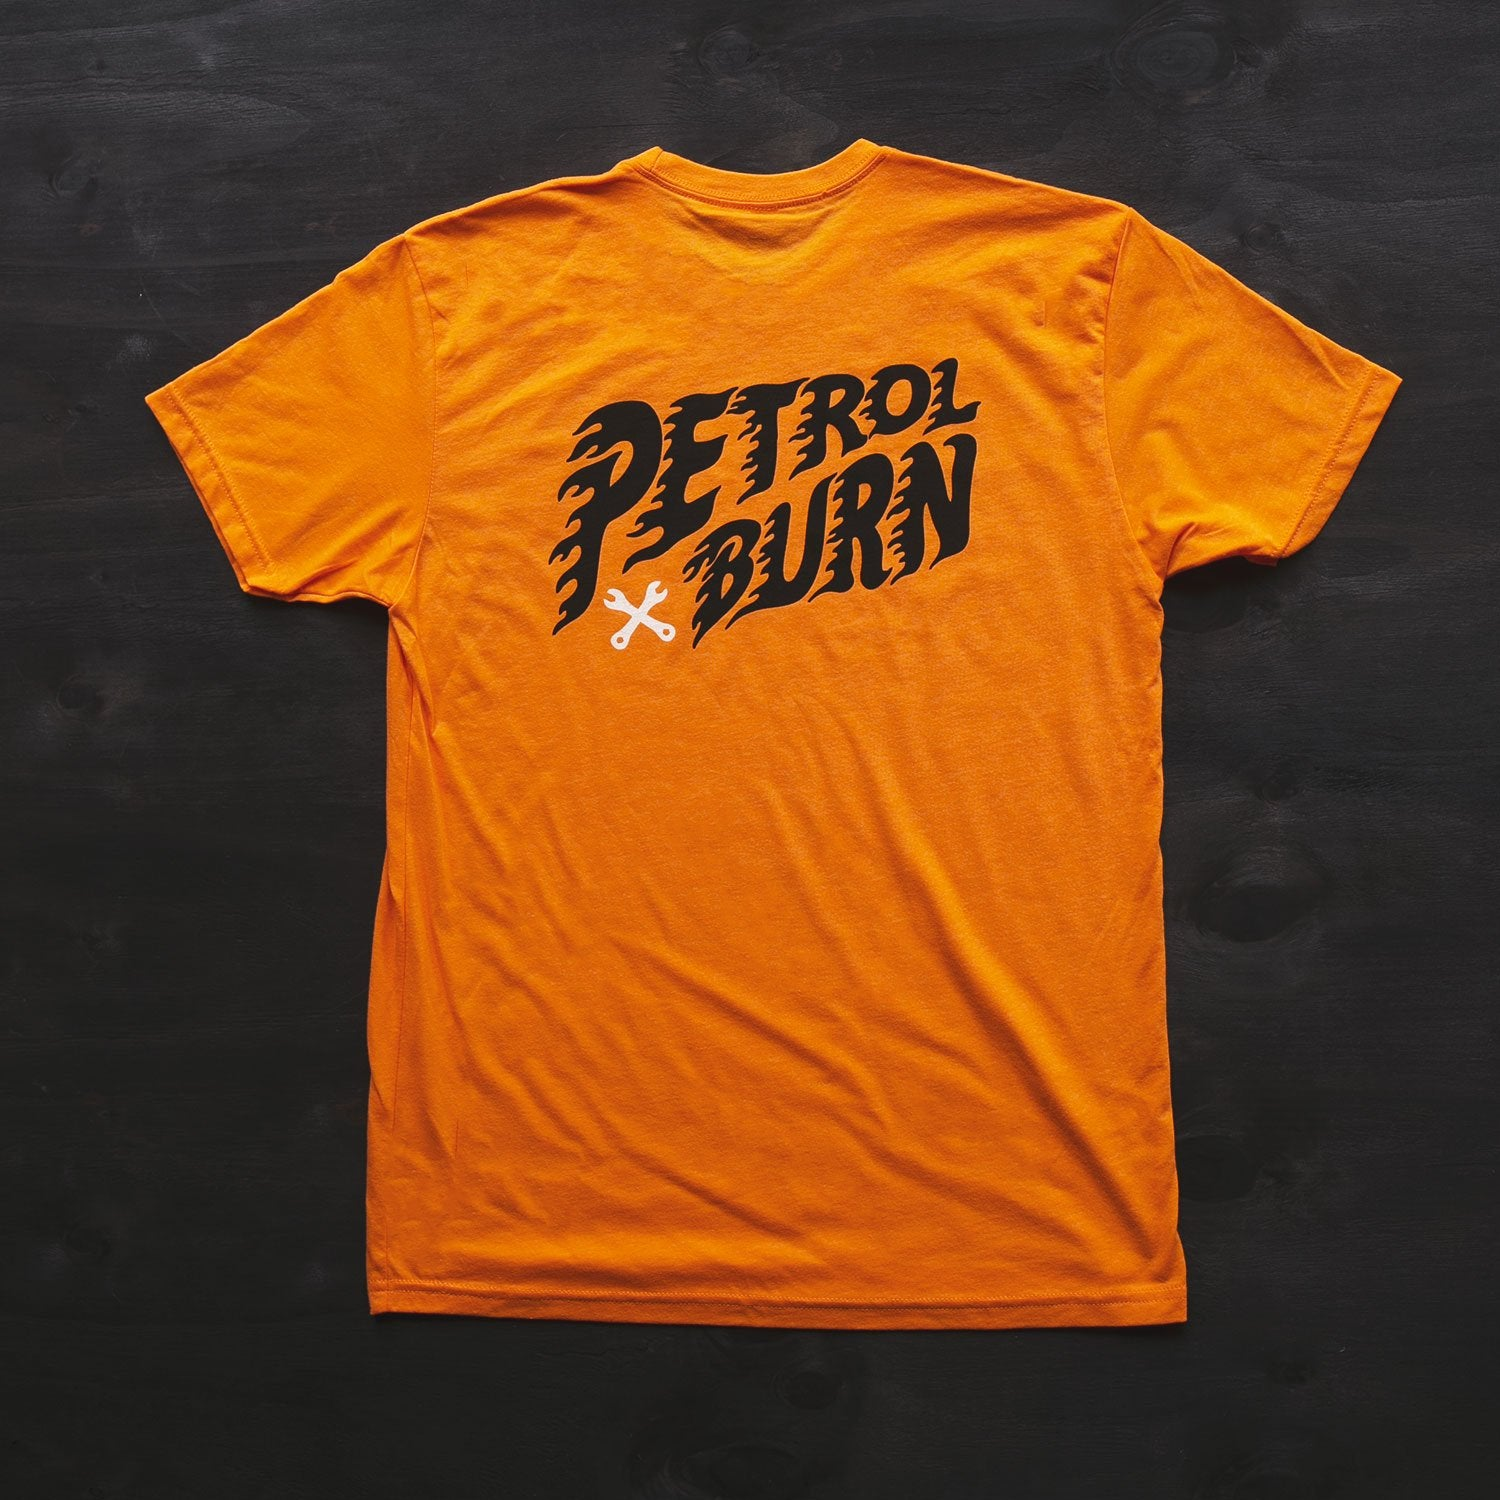 petrol burn orange moto lifestyle tshirt